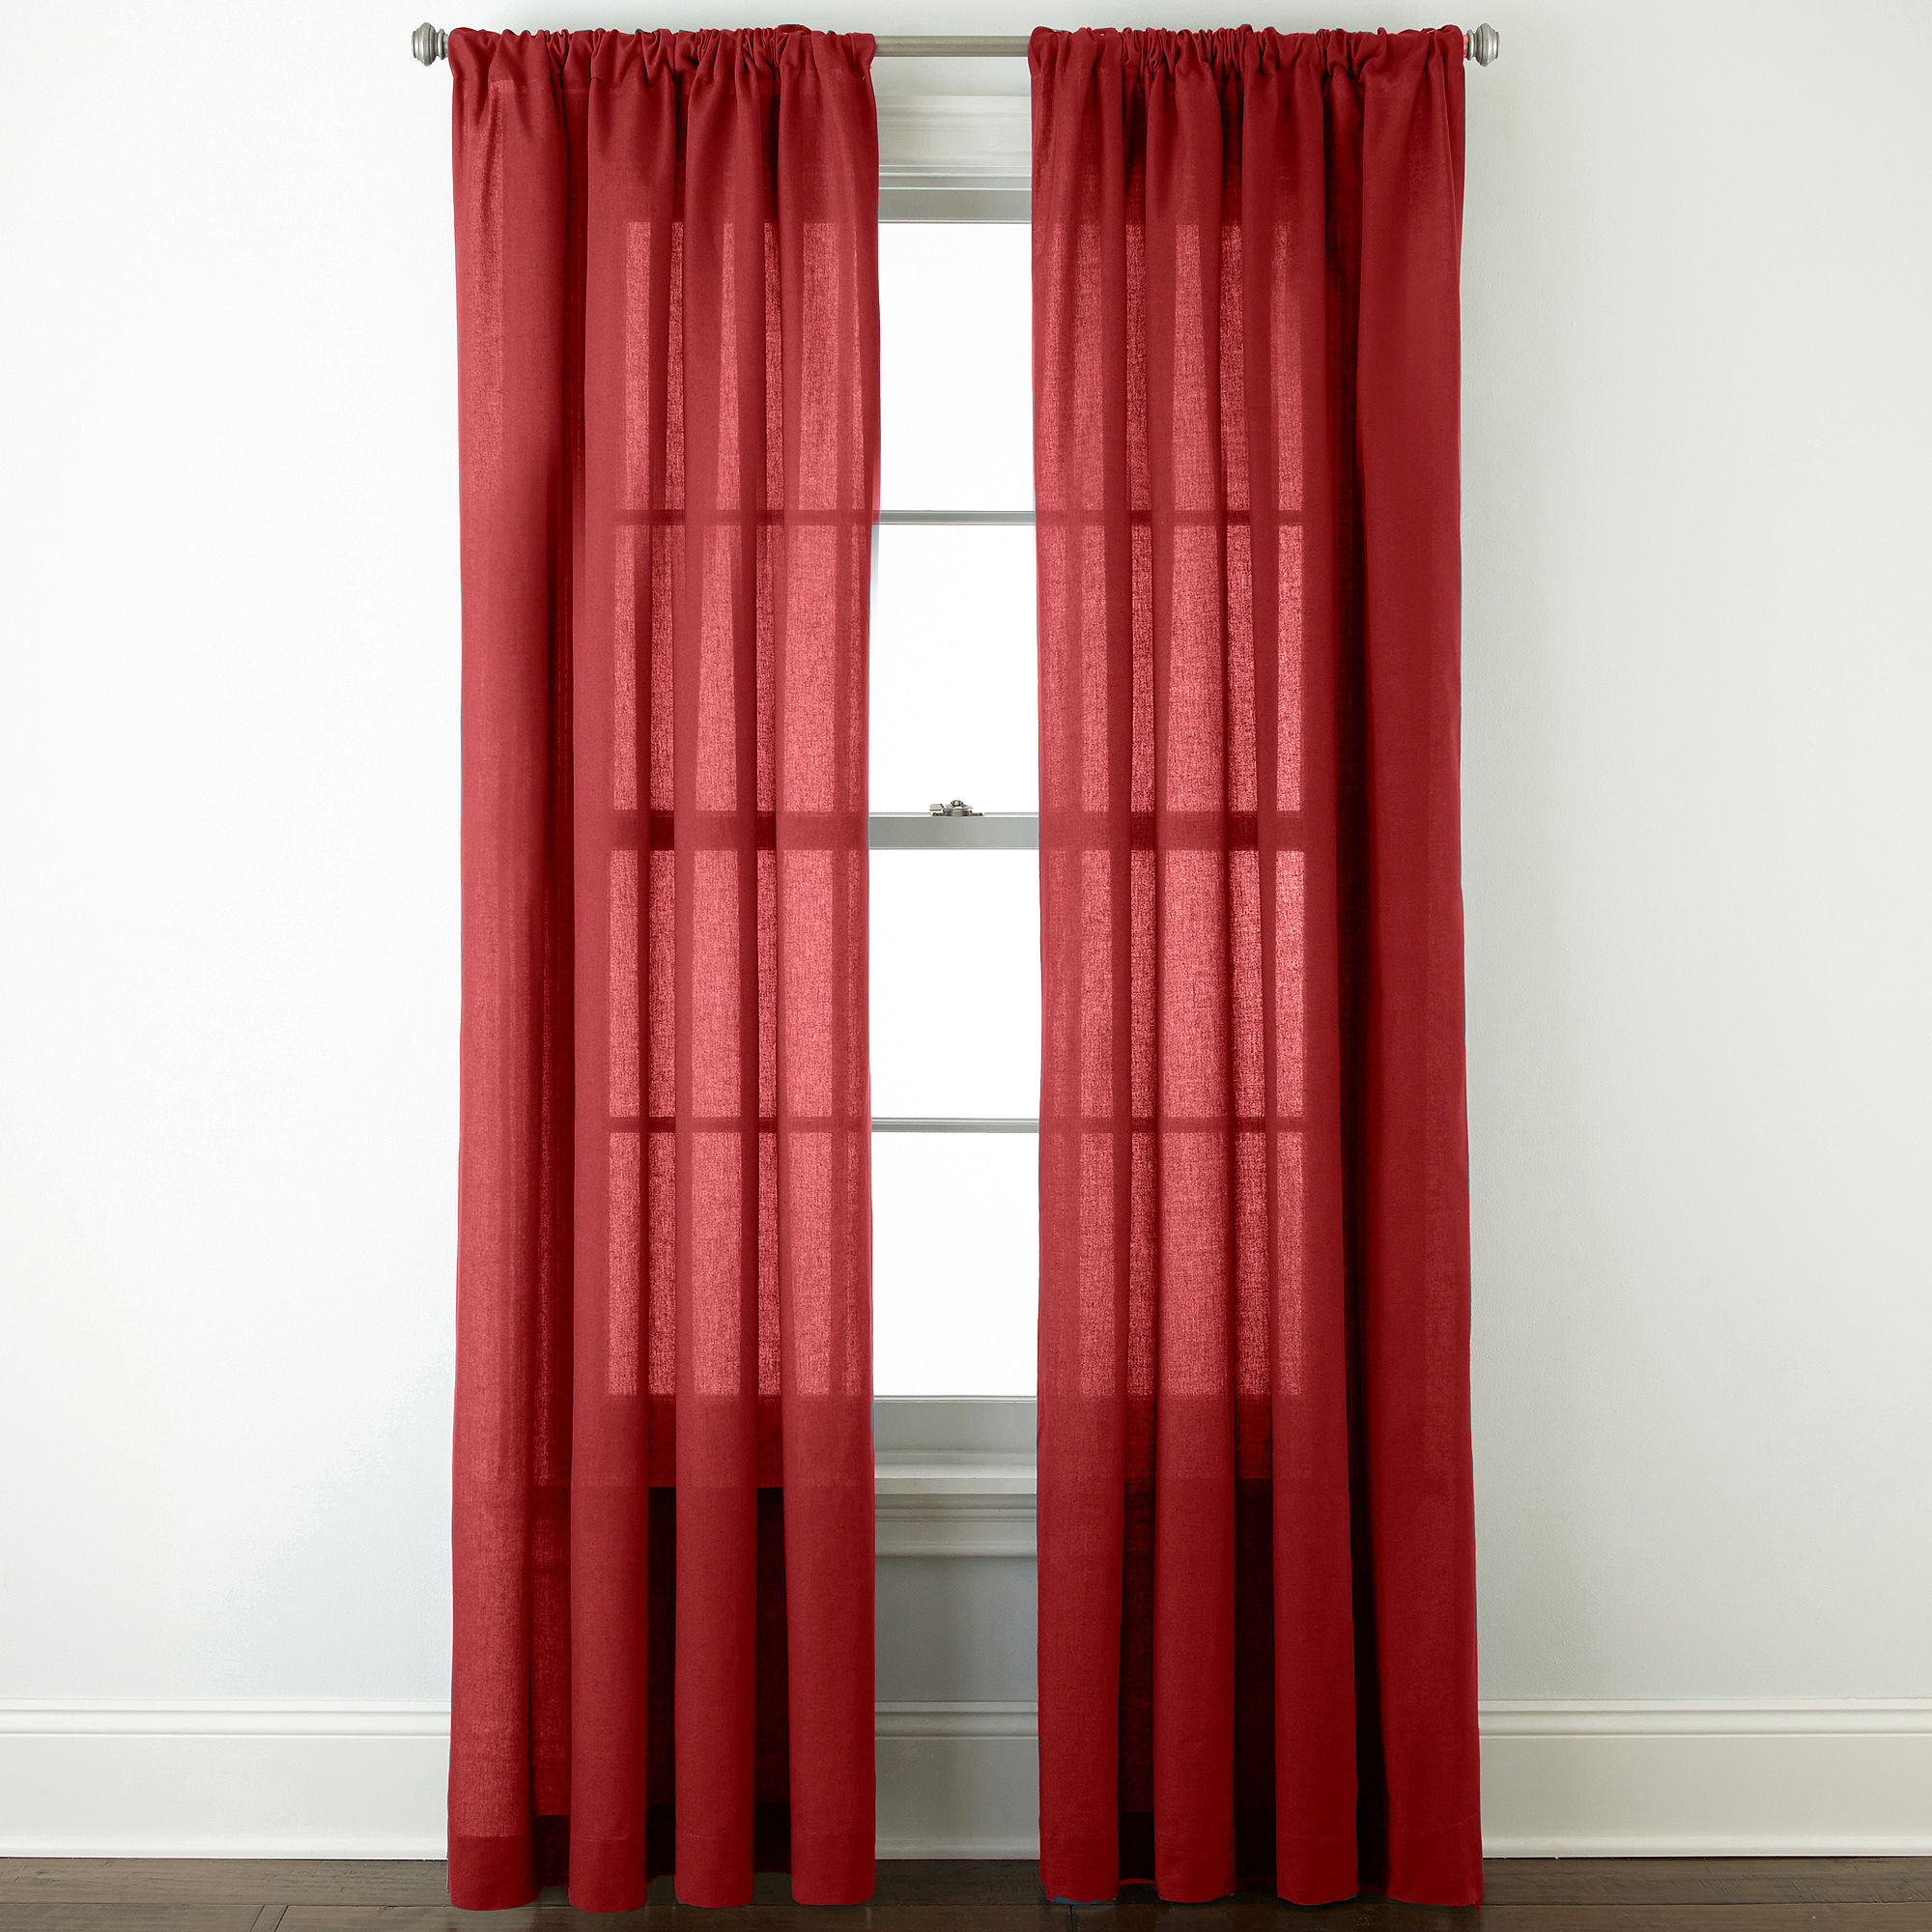 Jcpenney Living Room Curtains Home Product Search